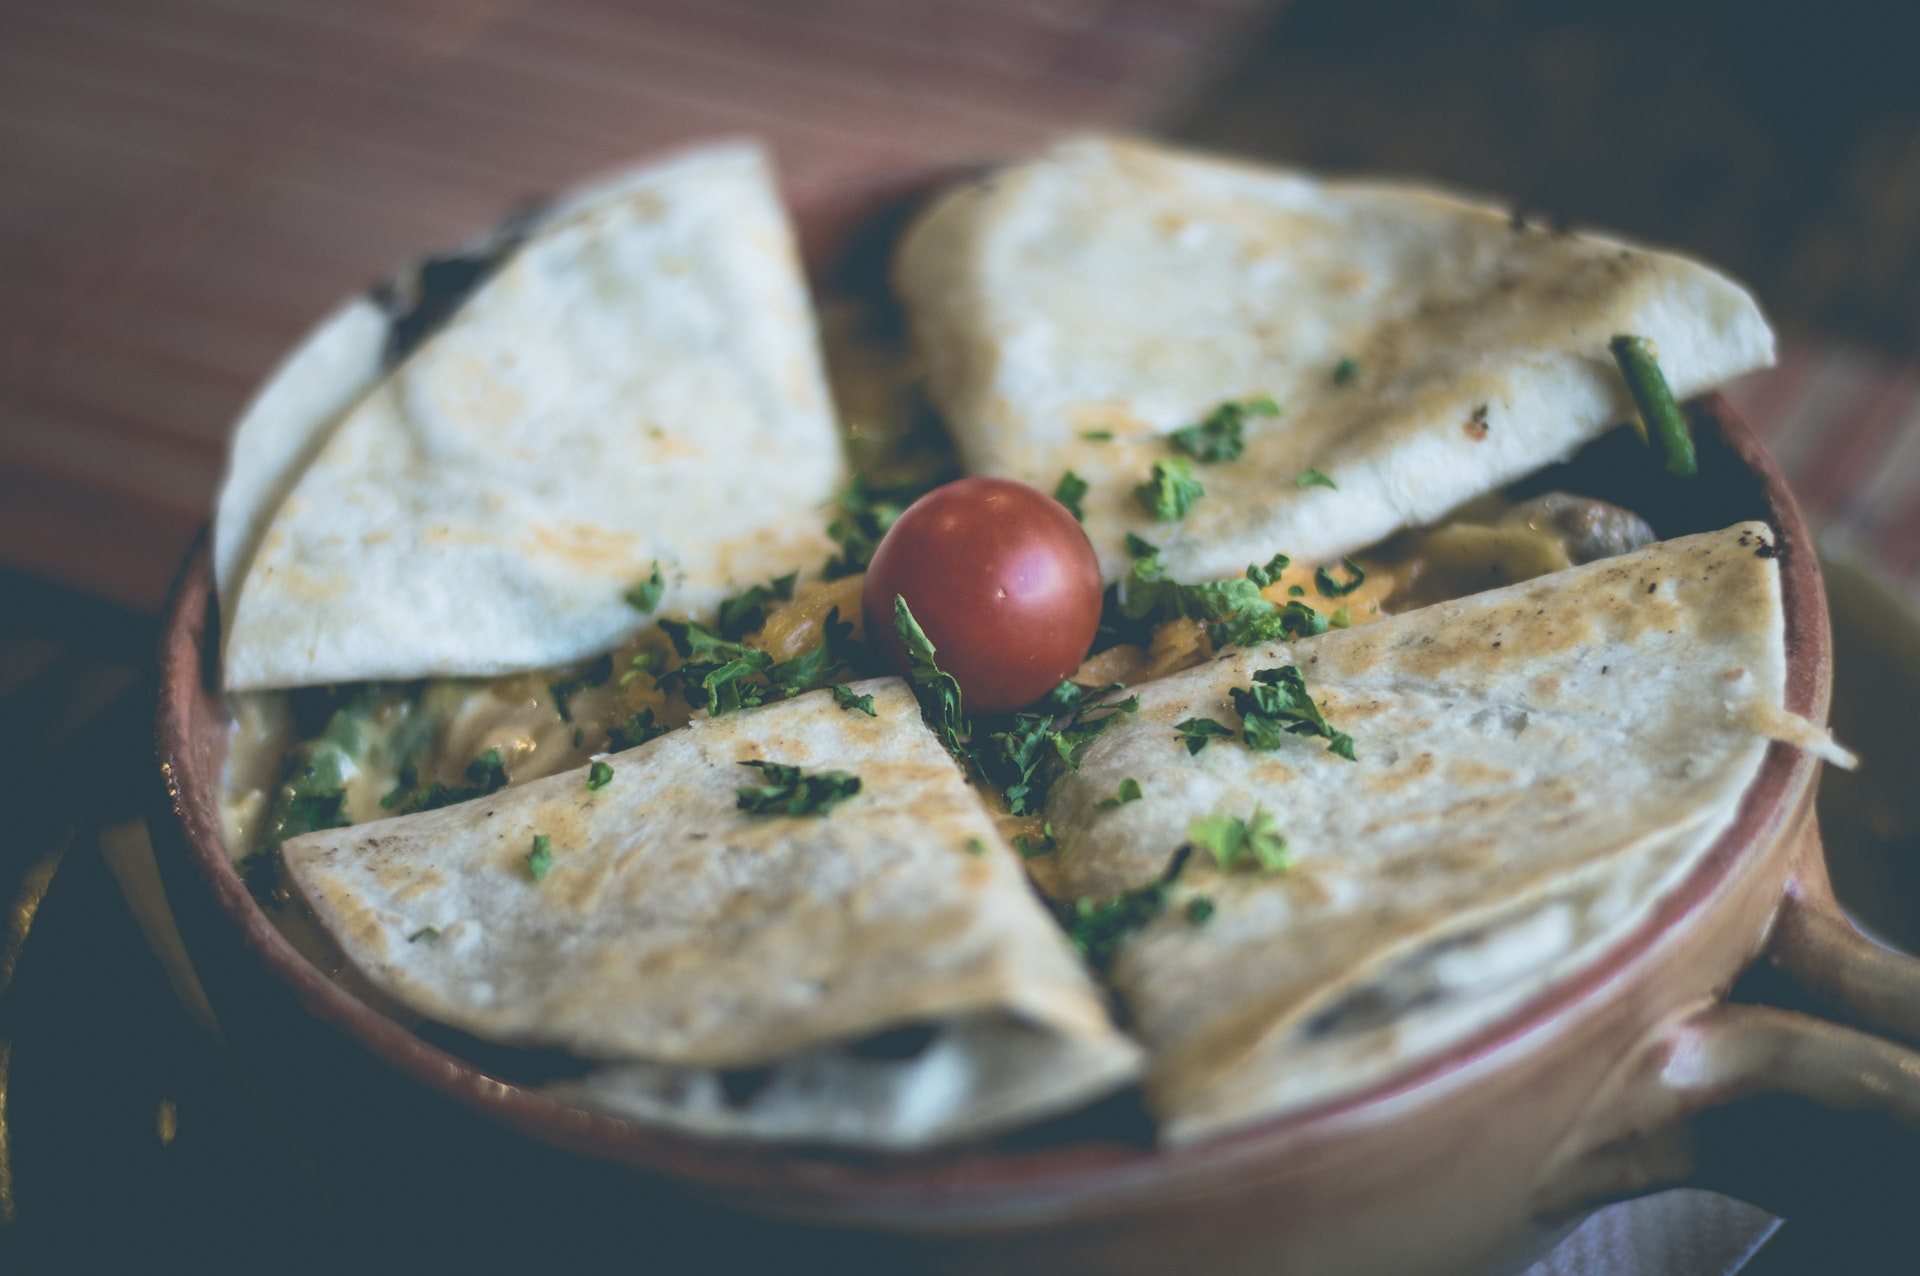 Quesadillas garnished with cilantro and tomatoes